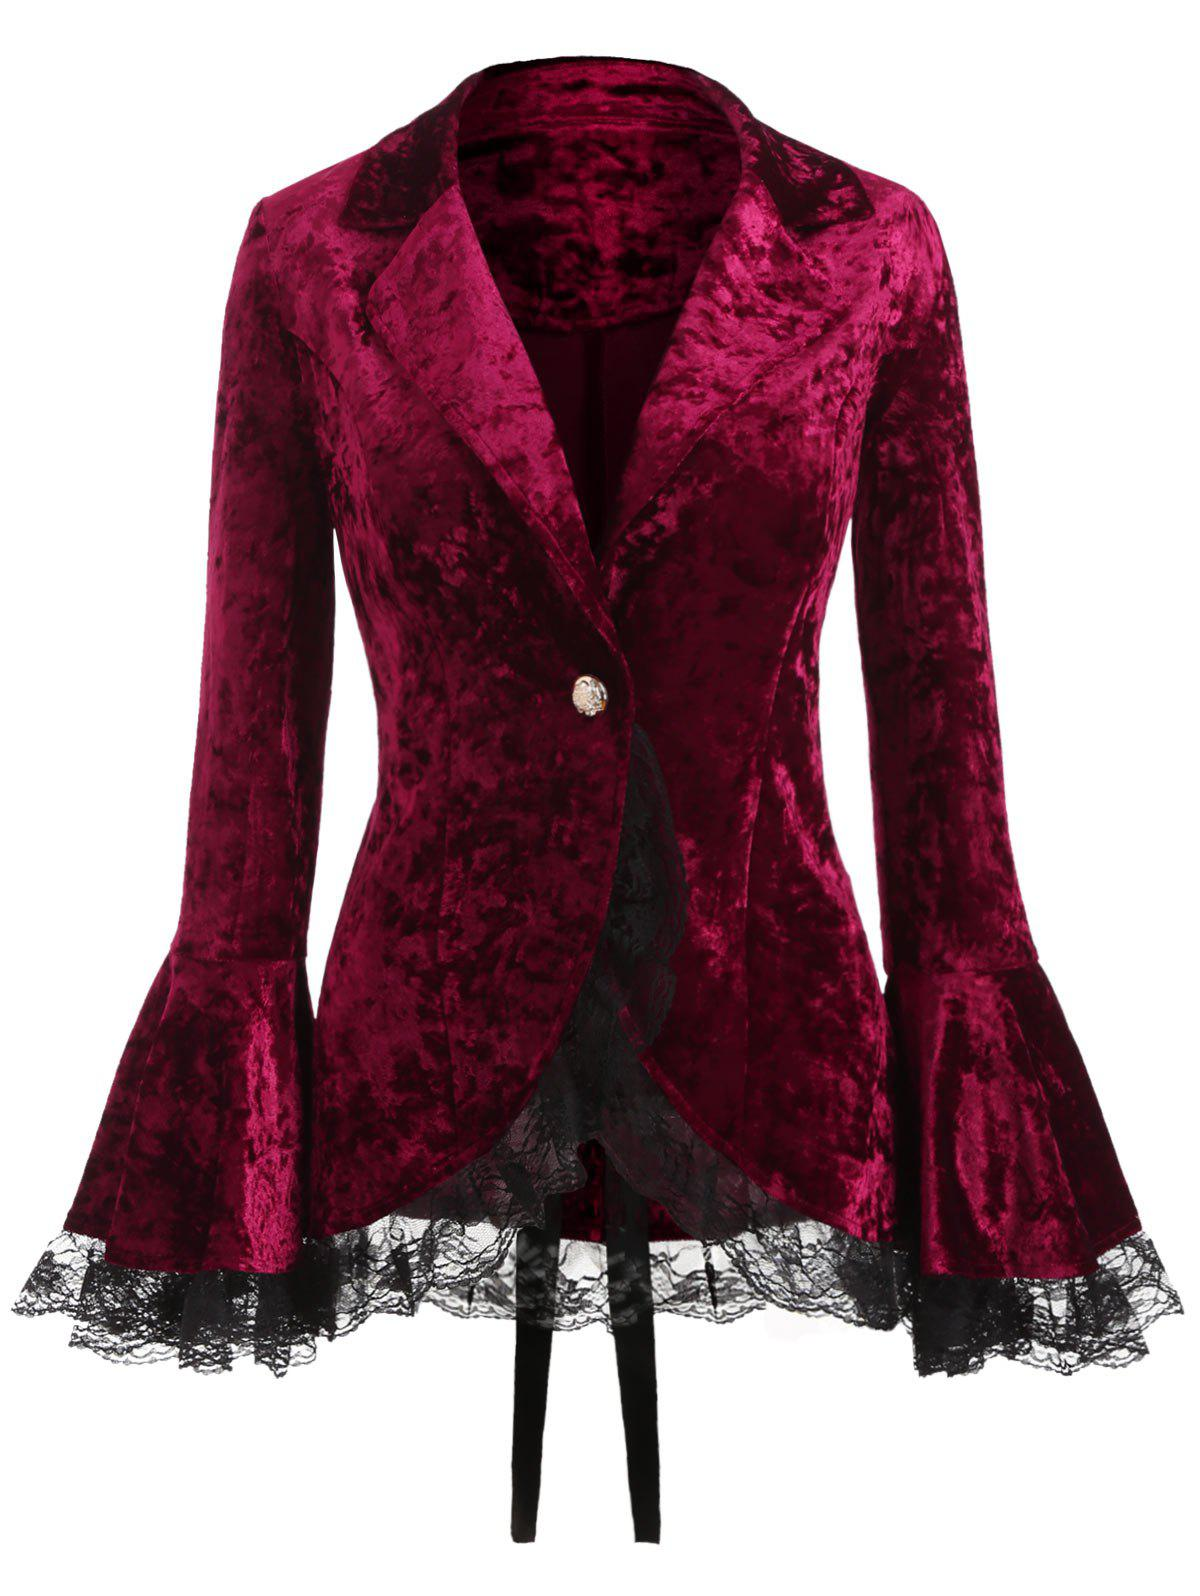 Corduroy Lace Up Long Sleeve Coat - RED WINE S